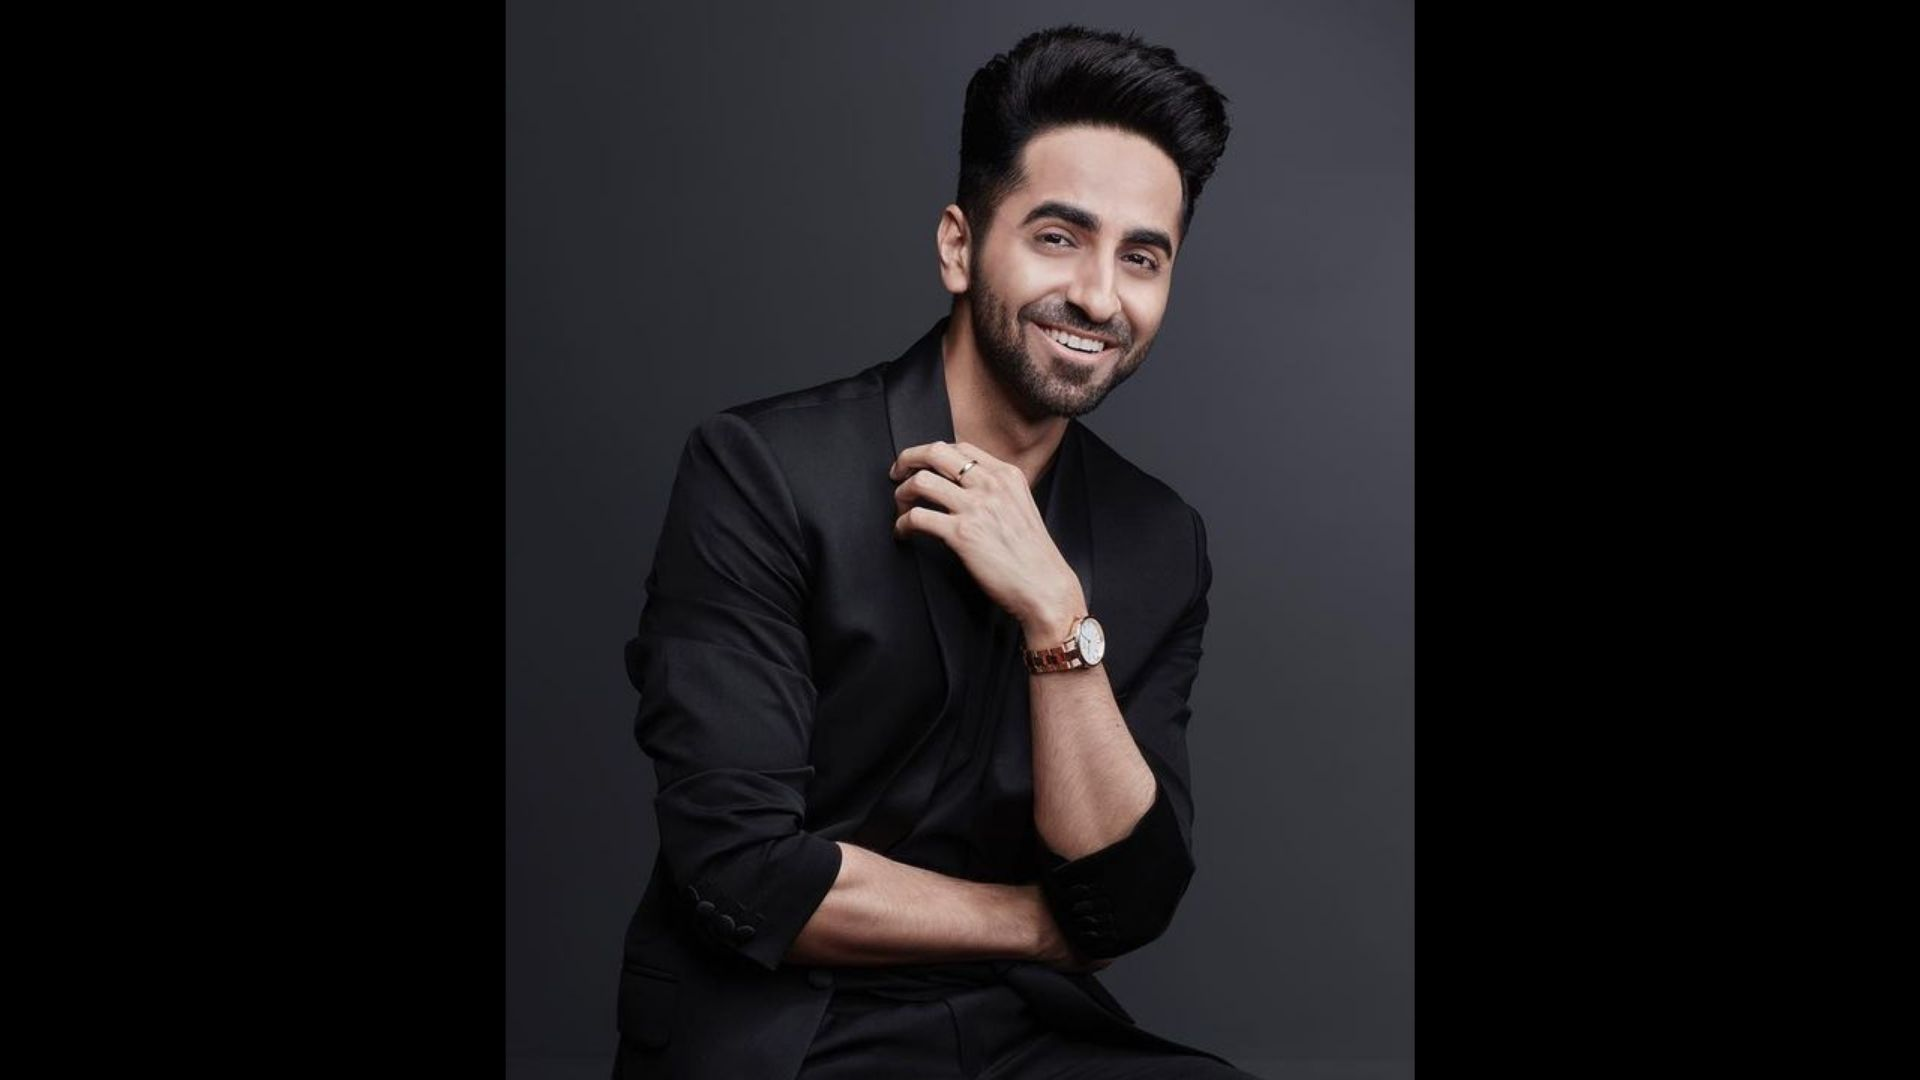 Action Hero Motion Poster: Ayushmann Khurrana's Next Film Is Sure To Bend The Rules